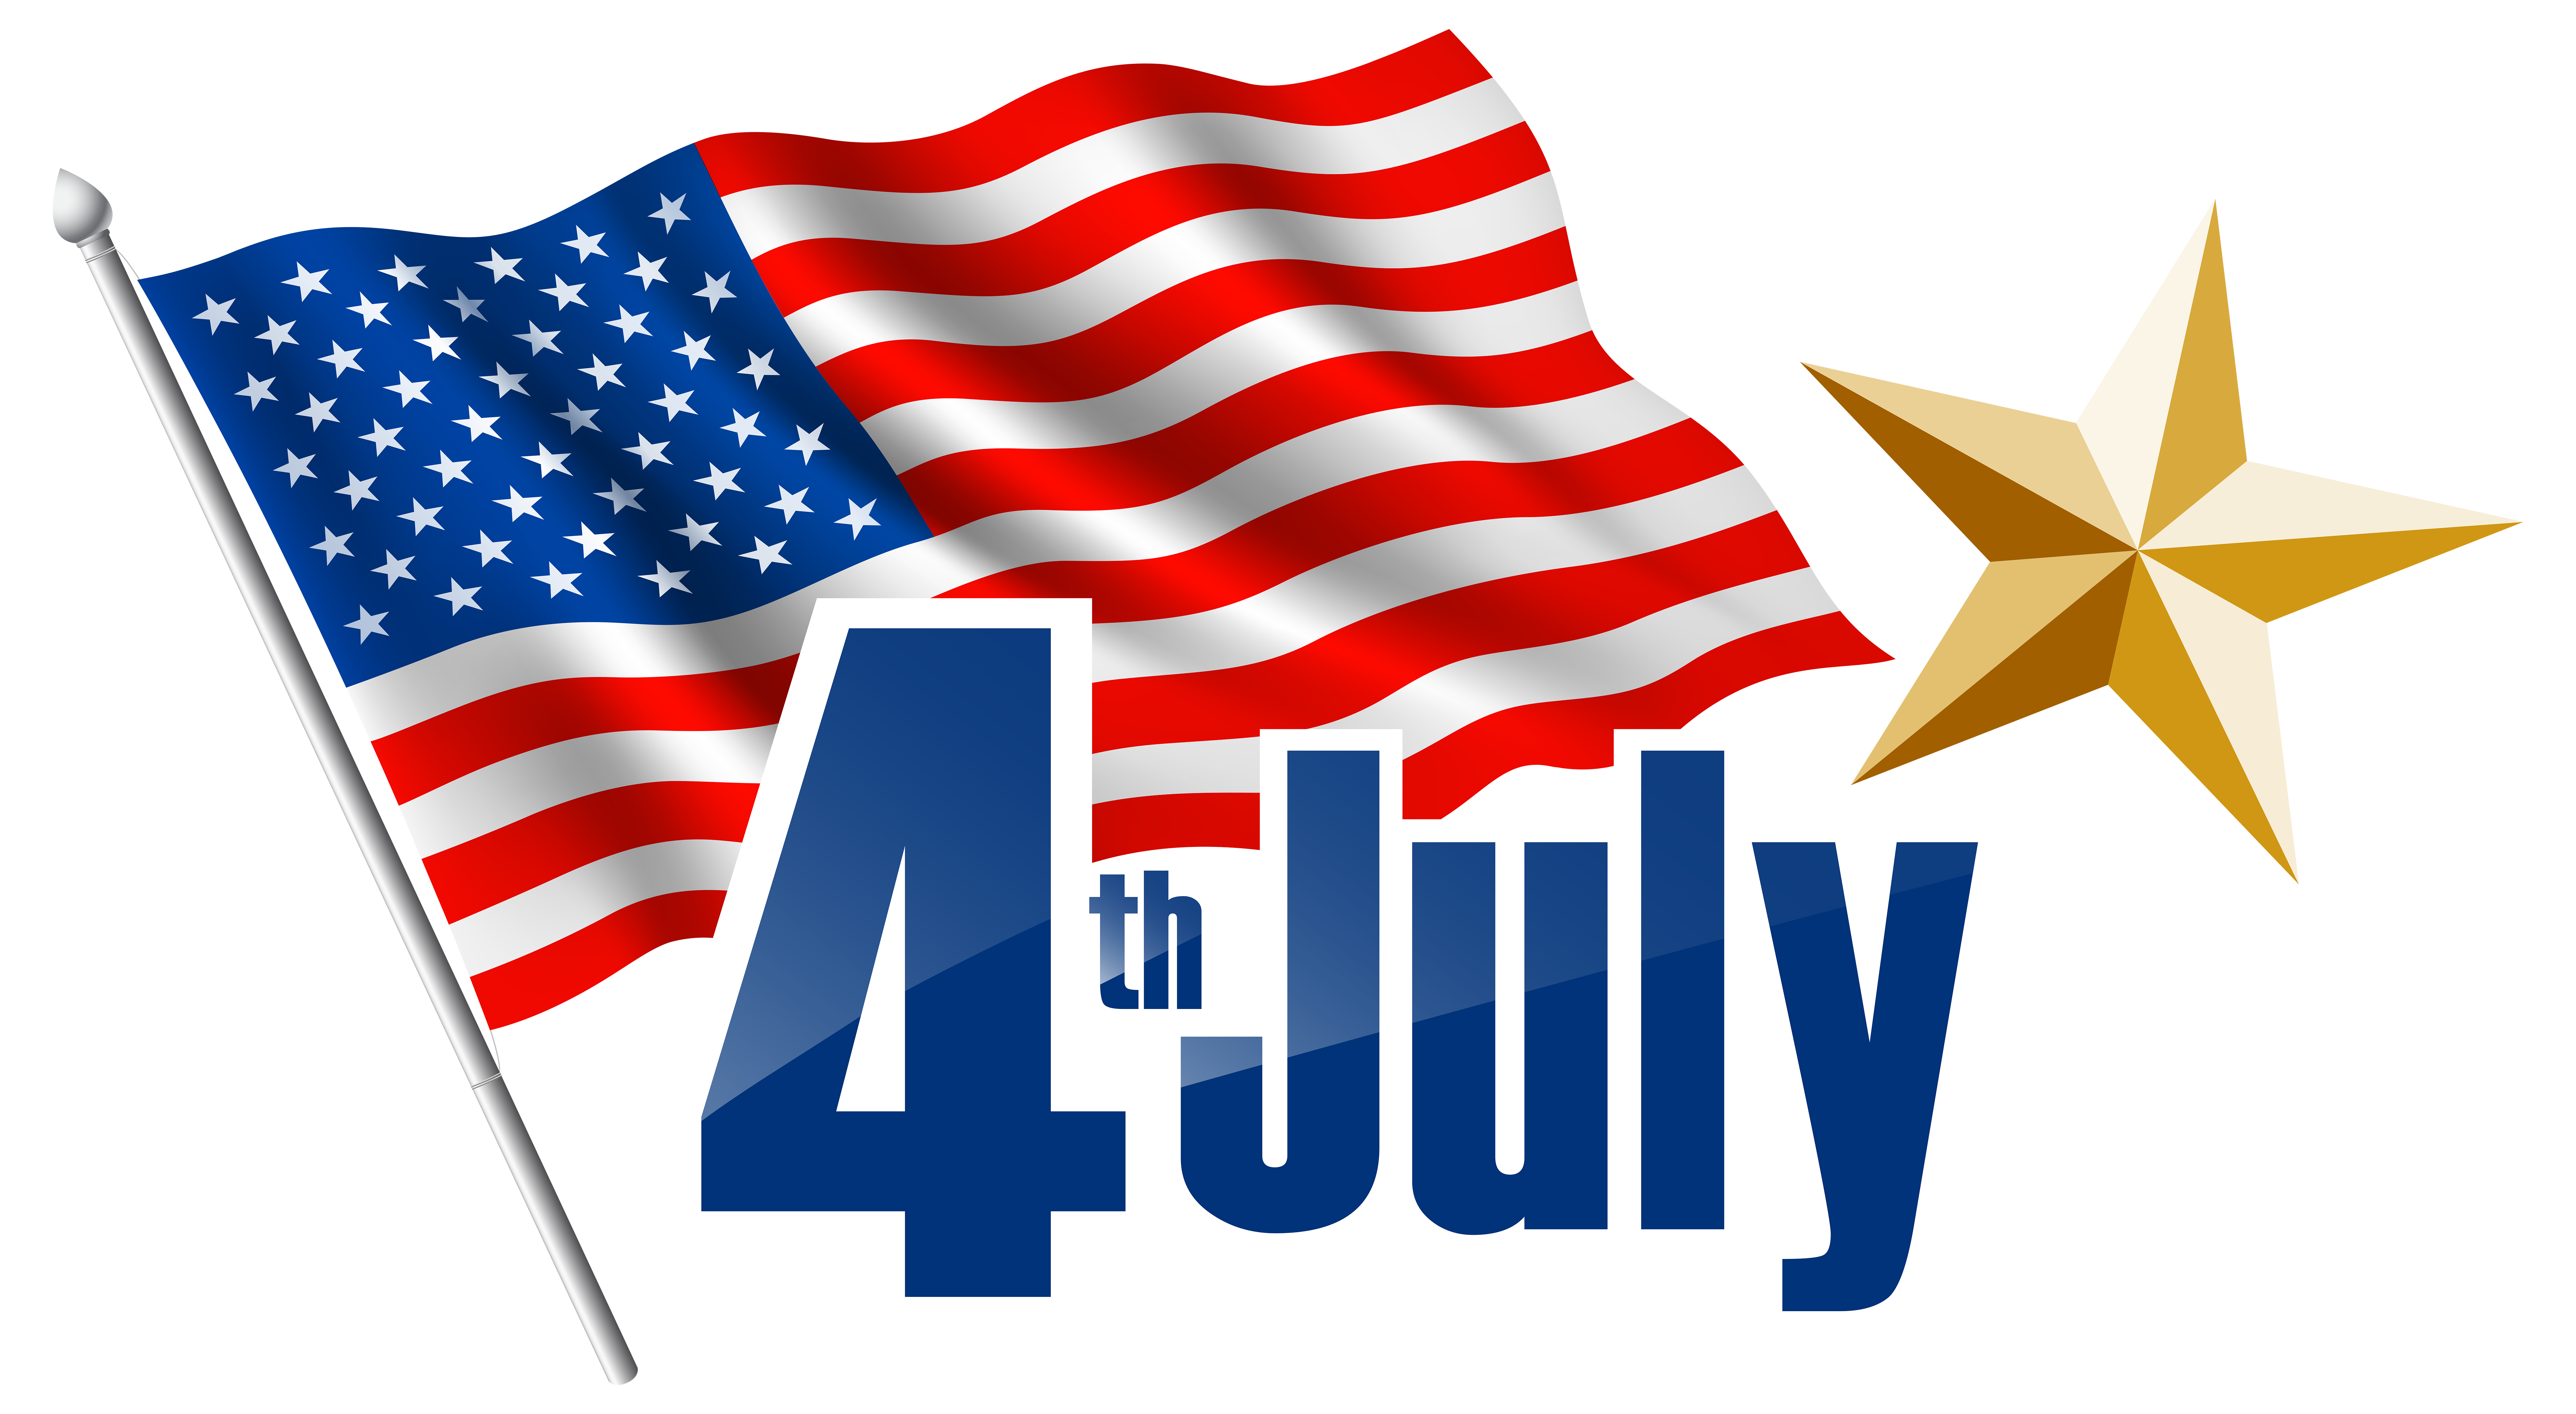 fourth of july free clipart at getdrawings com free for personal rh getdrawings com 4th of july background clipart free 4th of july background clipart free